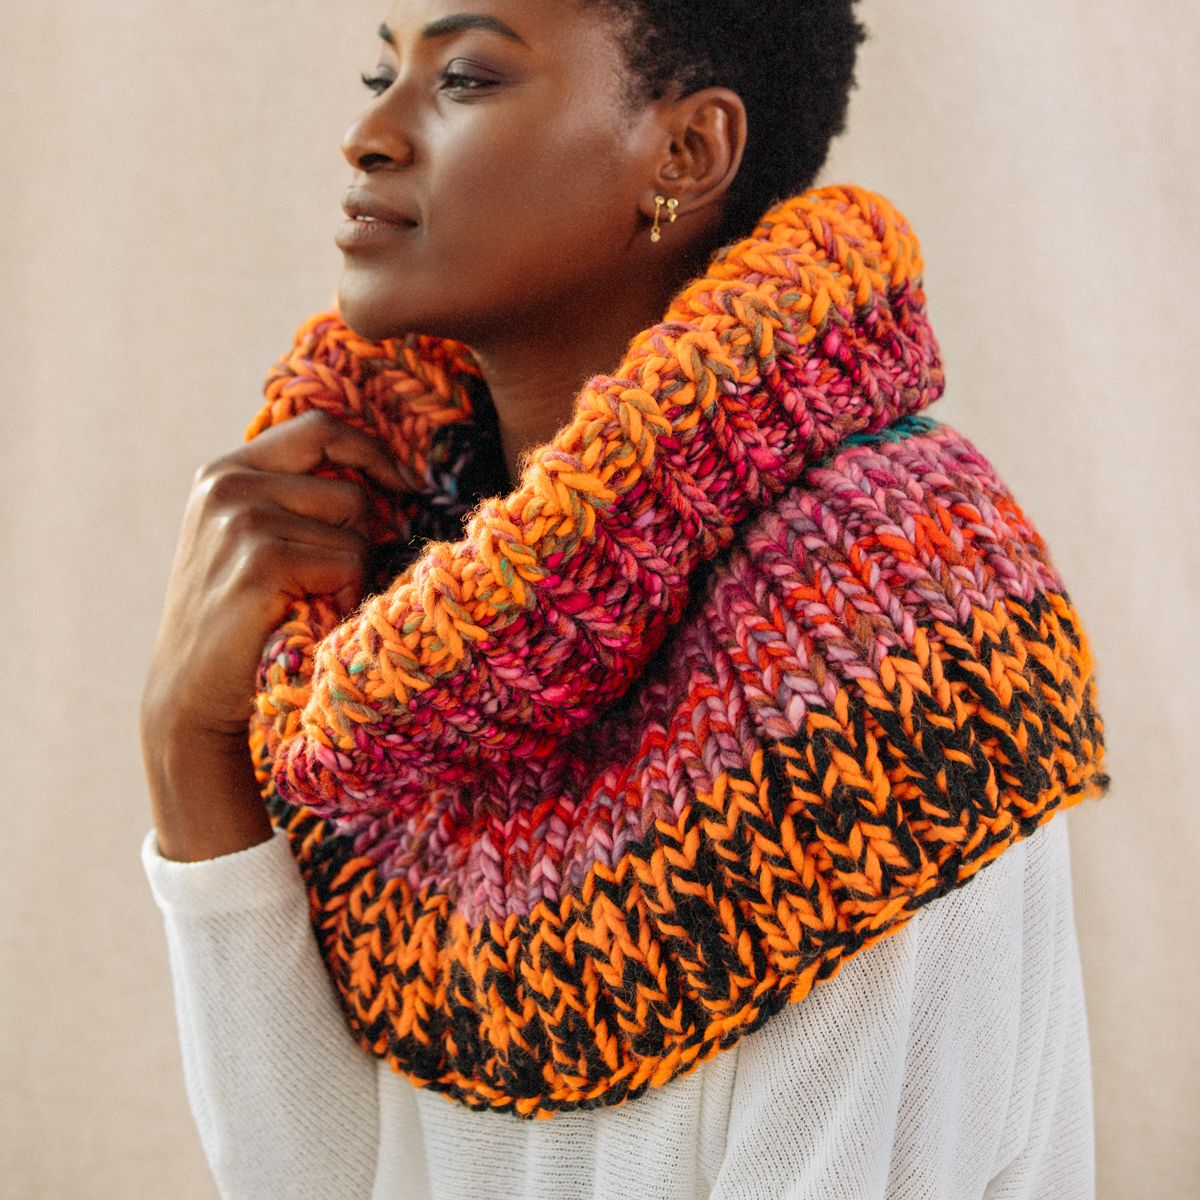 The ultimate never-taking-this-off fall accessory: a cozy knit cowl hood in bright autumnal colors.